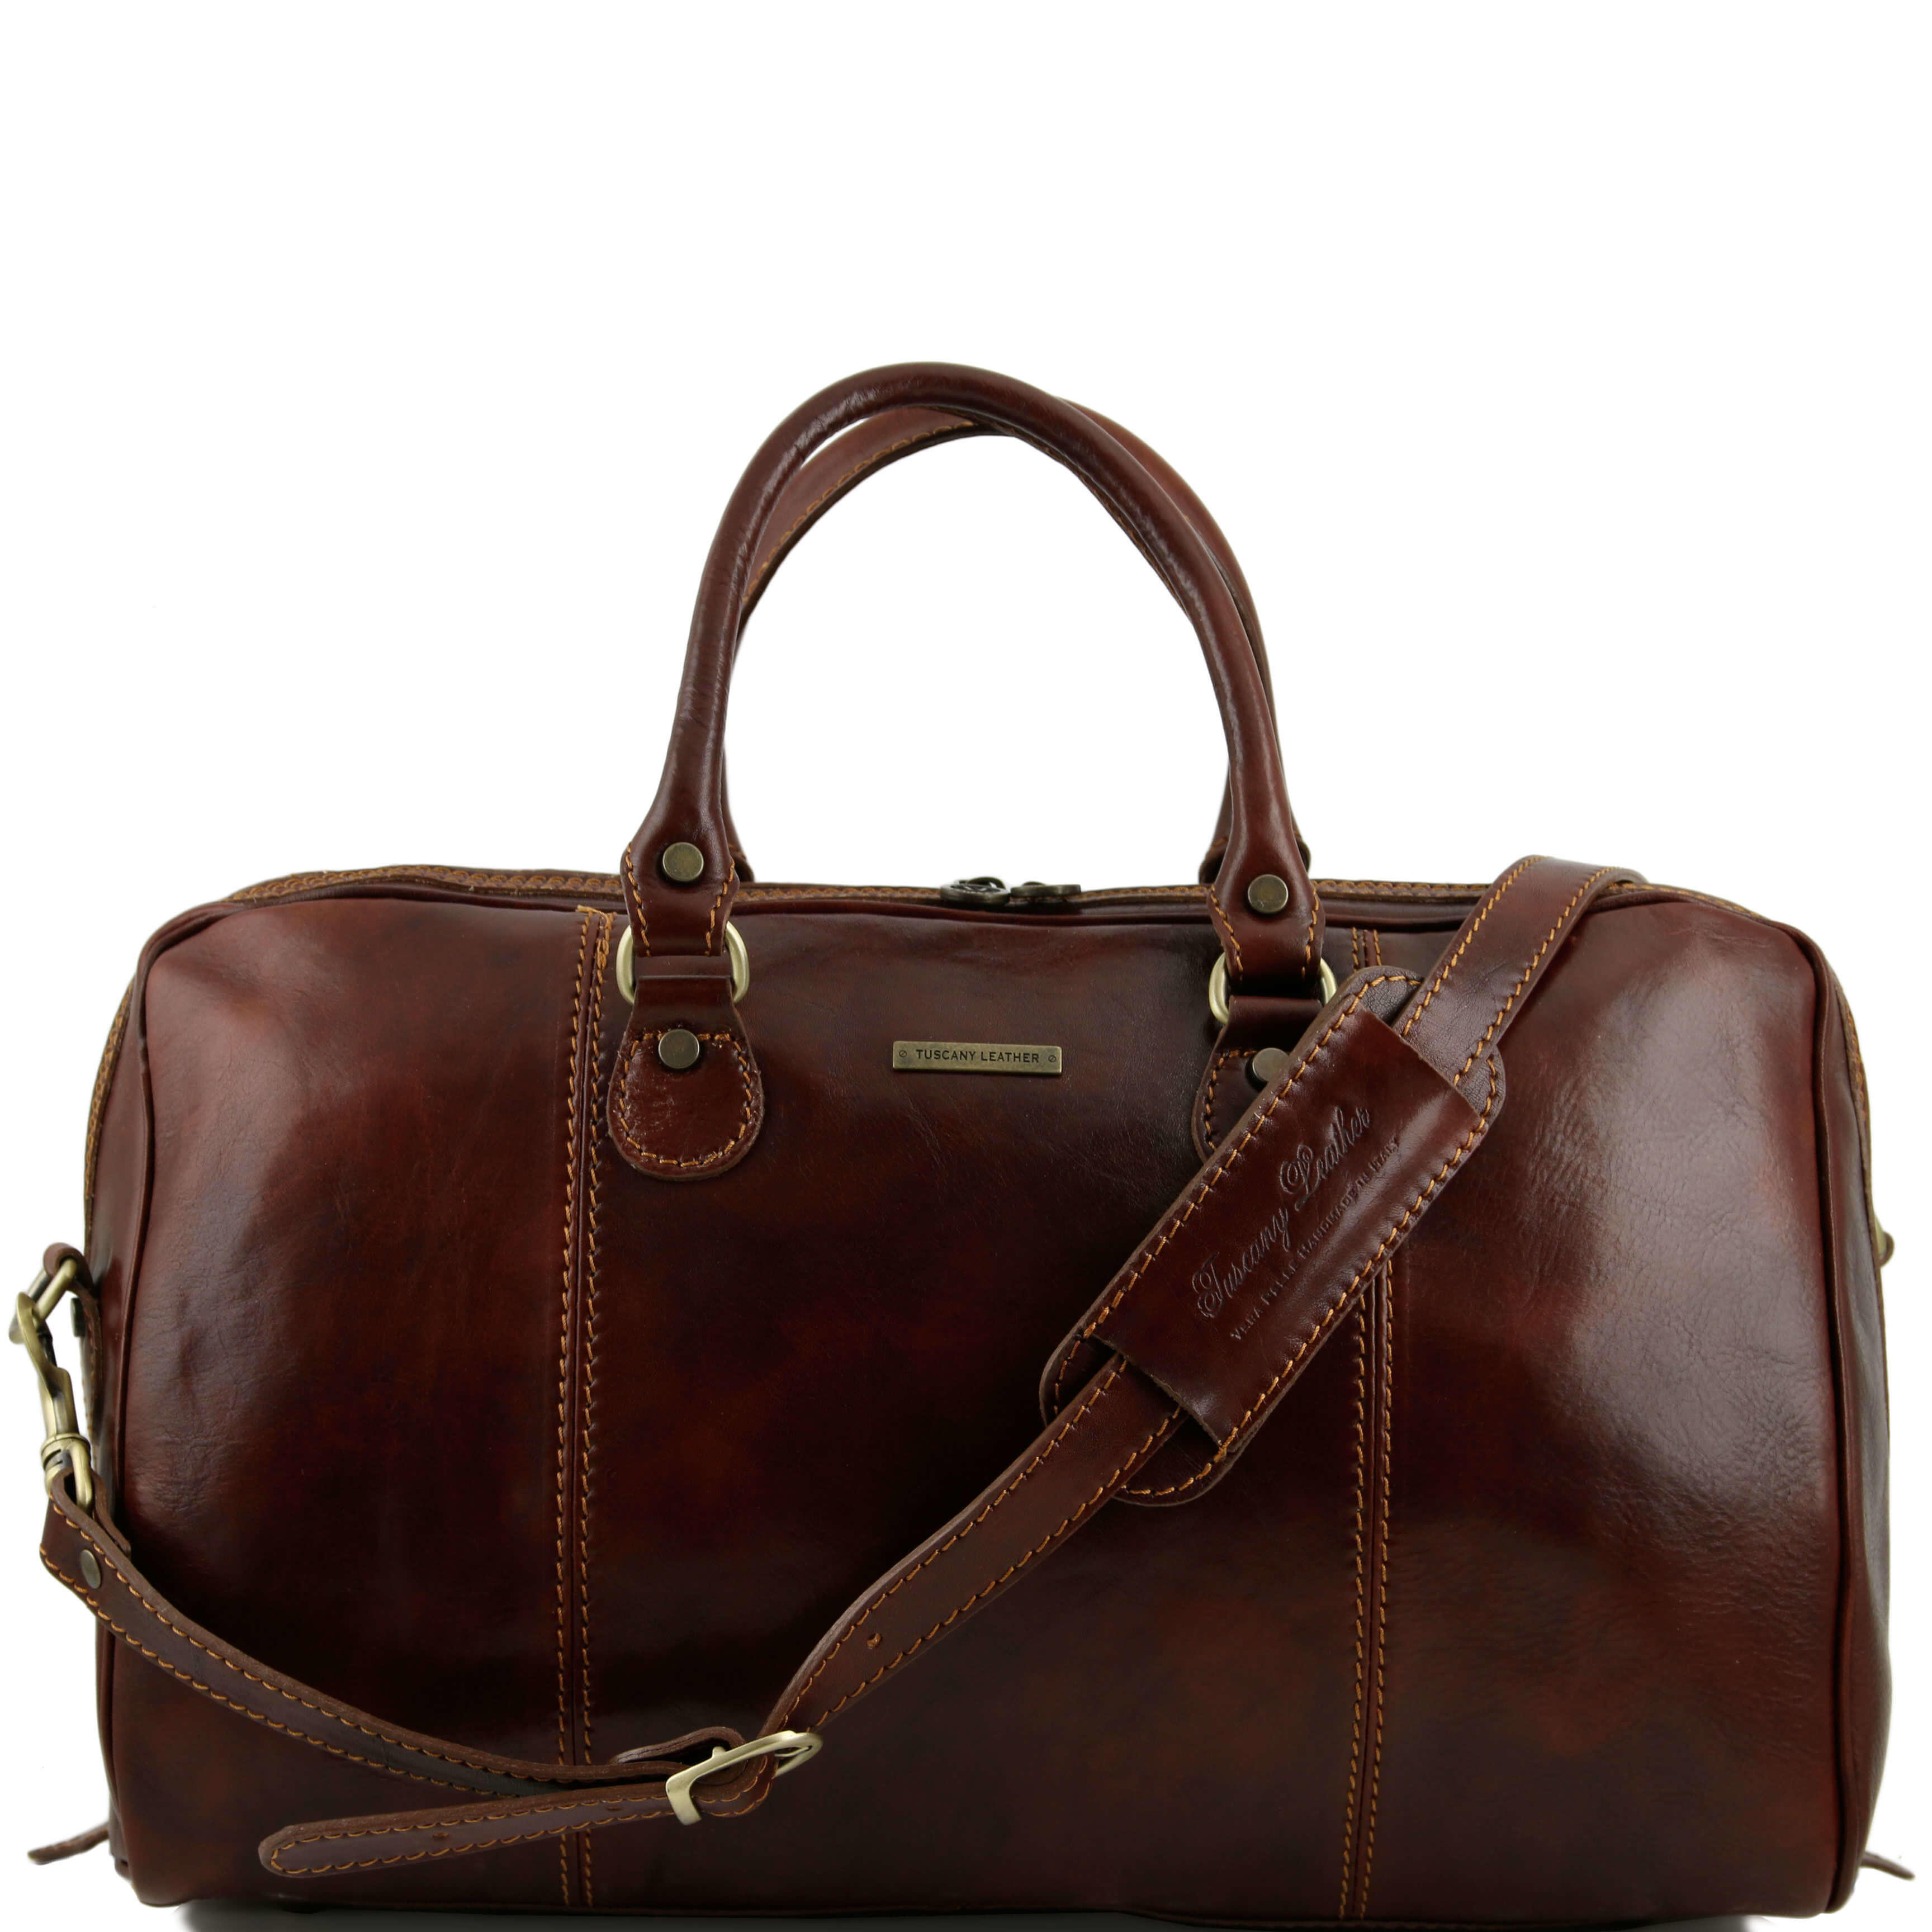 TL1045 Paris Leather Travel - Luggage  -Duffel - Bag - Case & Sh